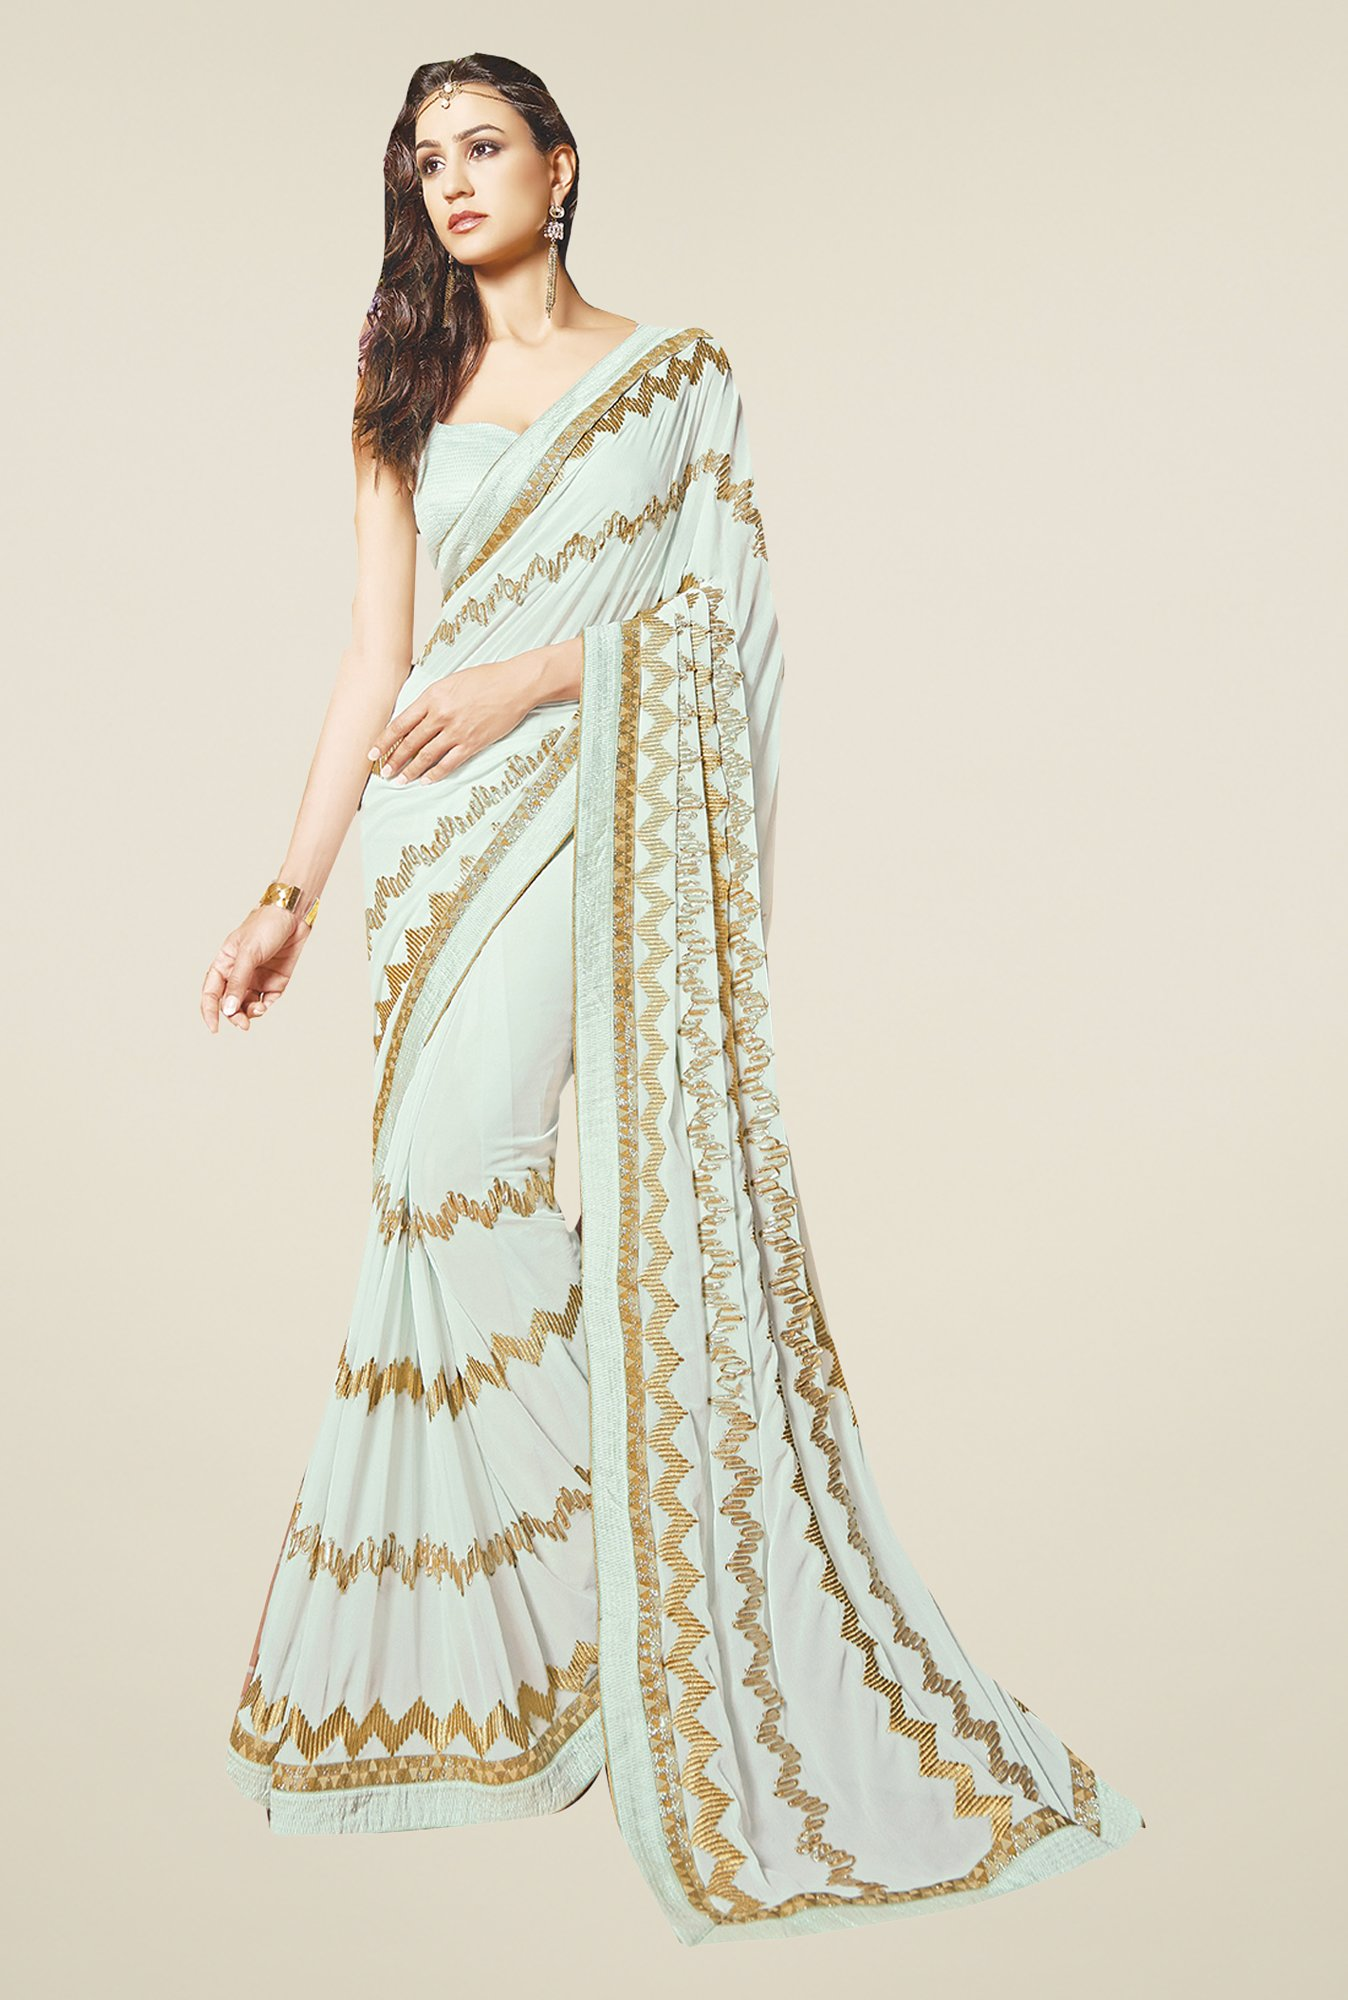 Ishin Cream Faux Georgette Saree